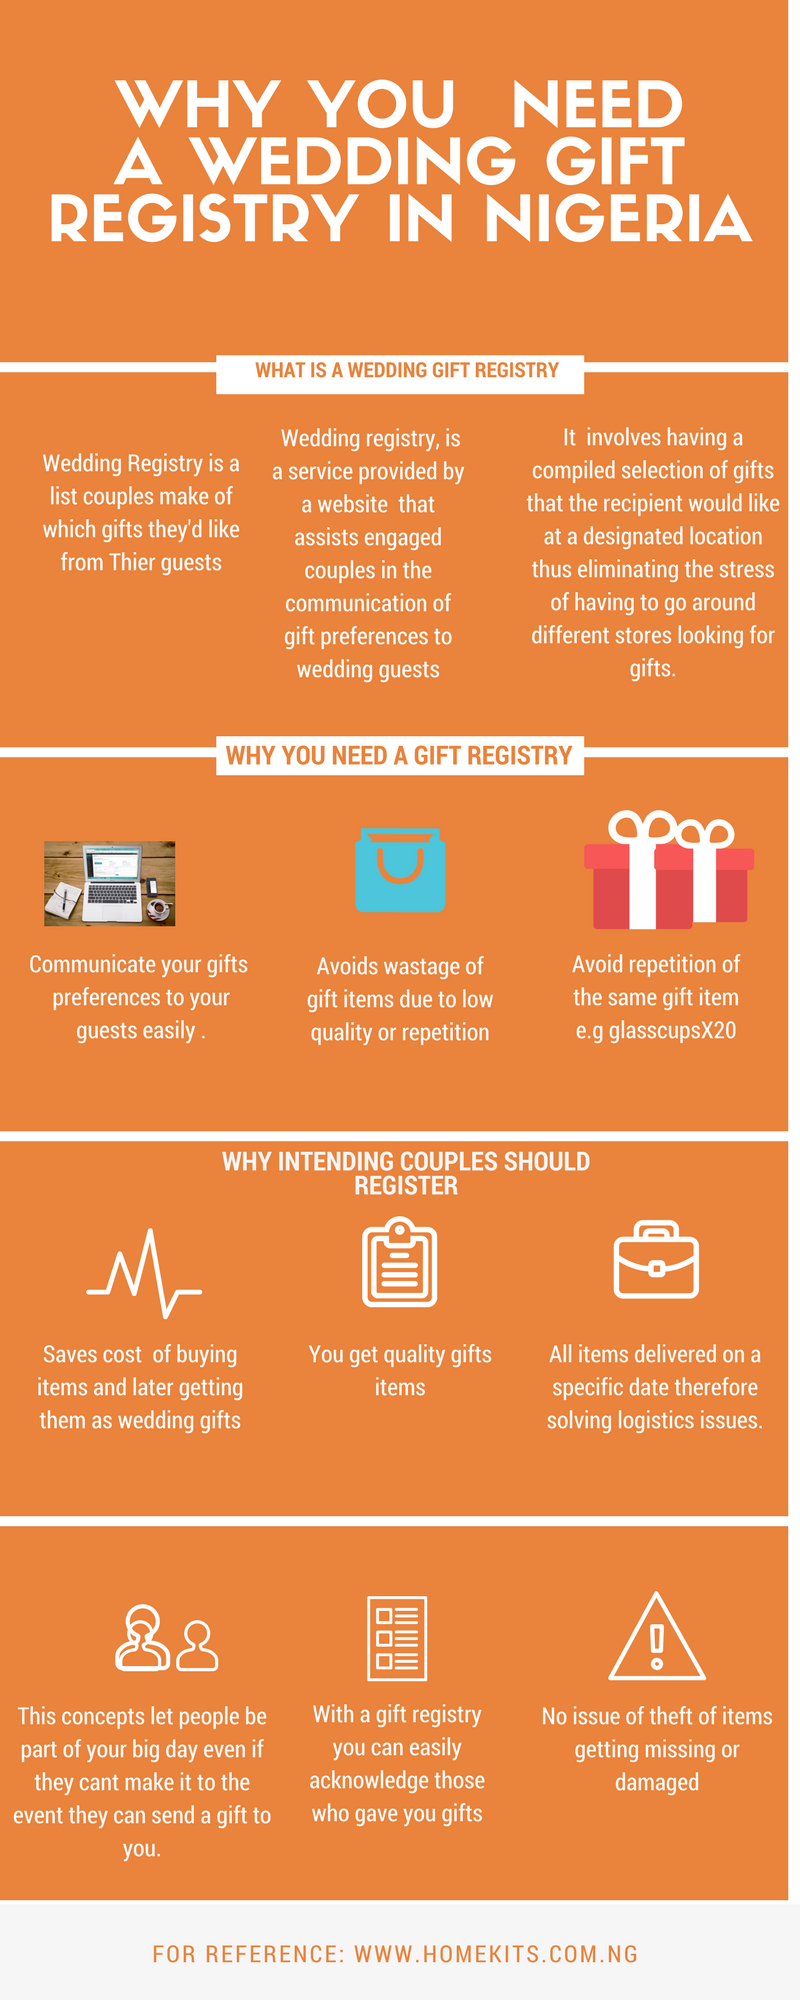 Why You Need a Gift Registry in Nigeria